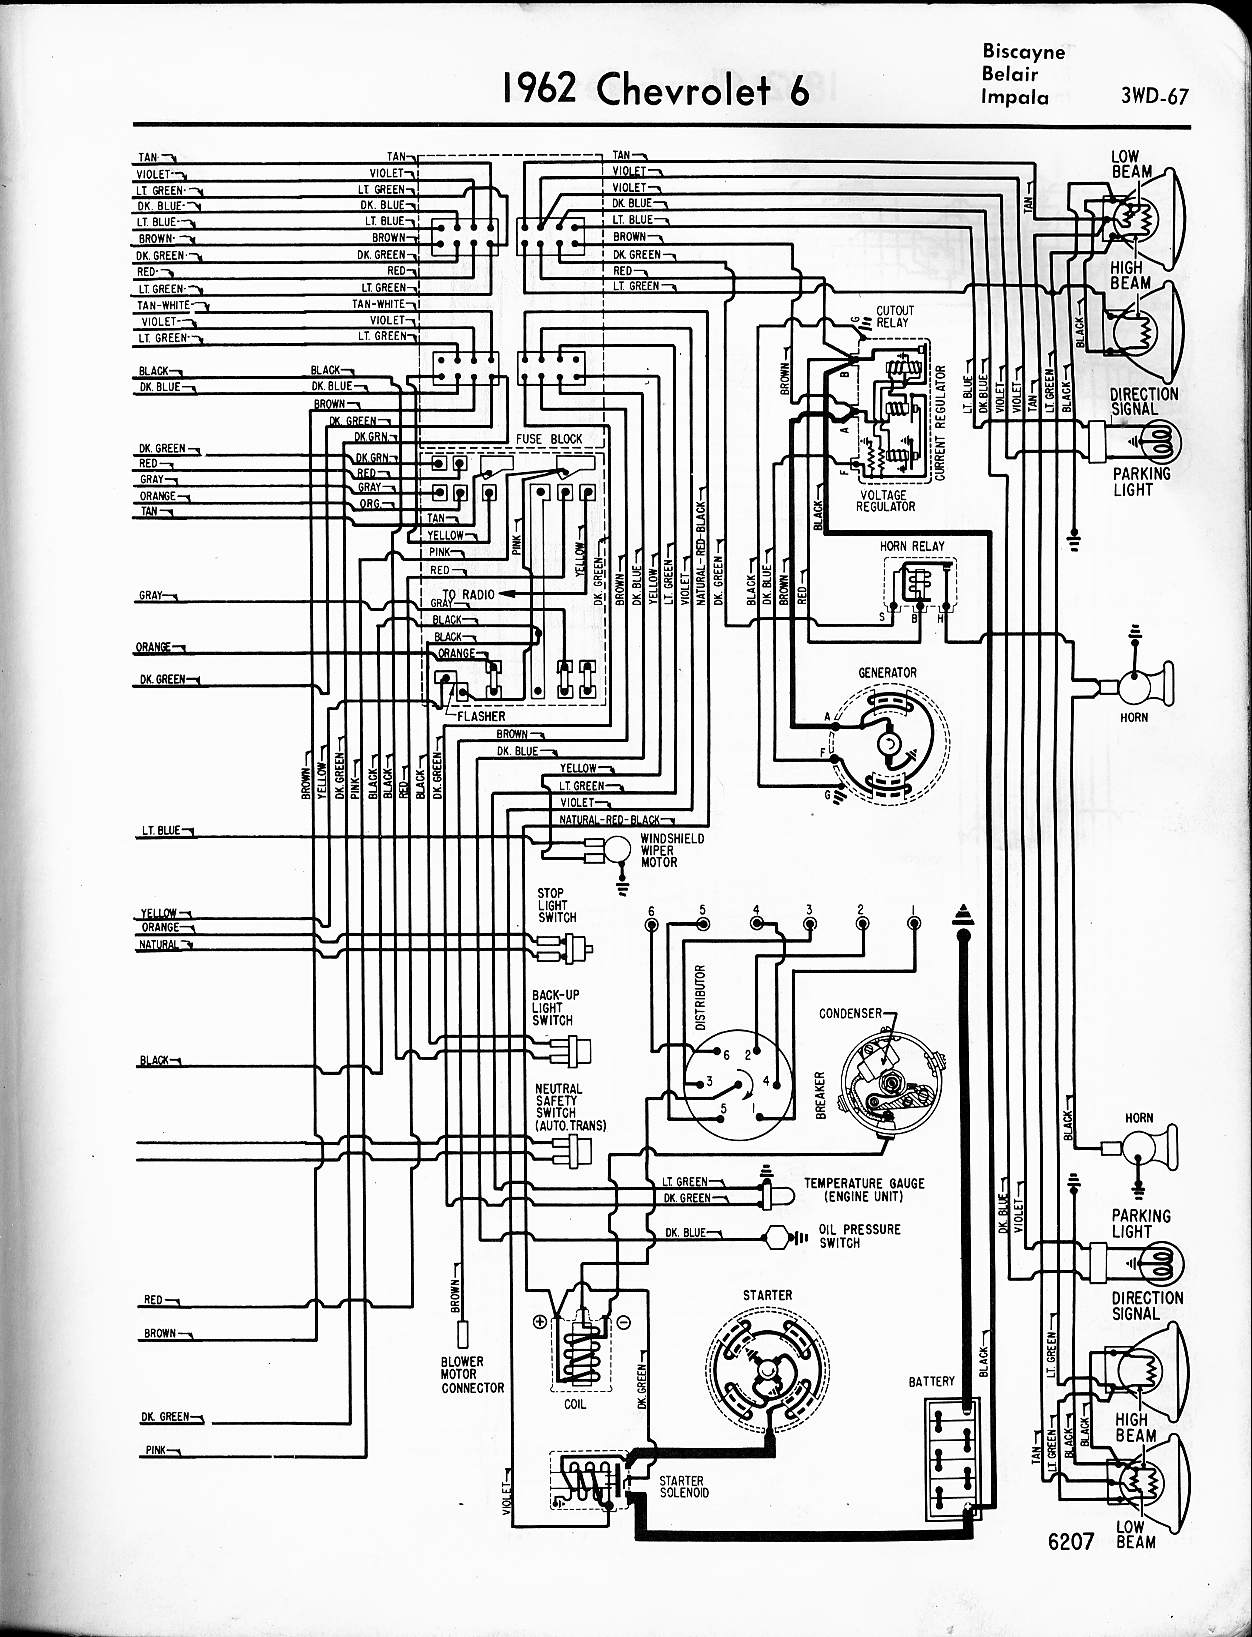 1962 chevy wiper motor wiring diagram